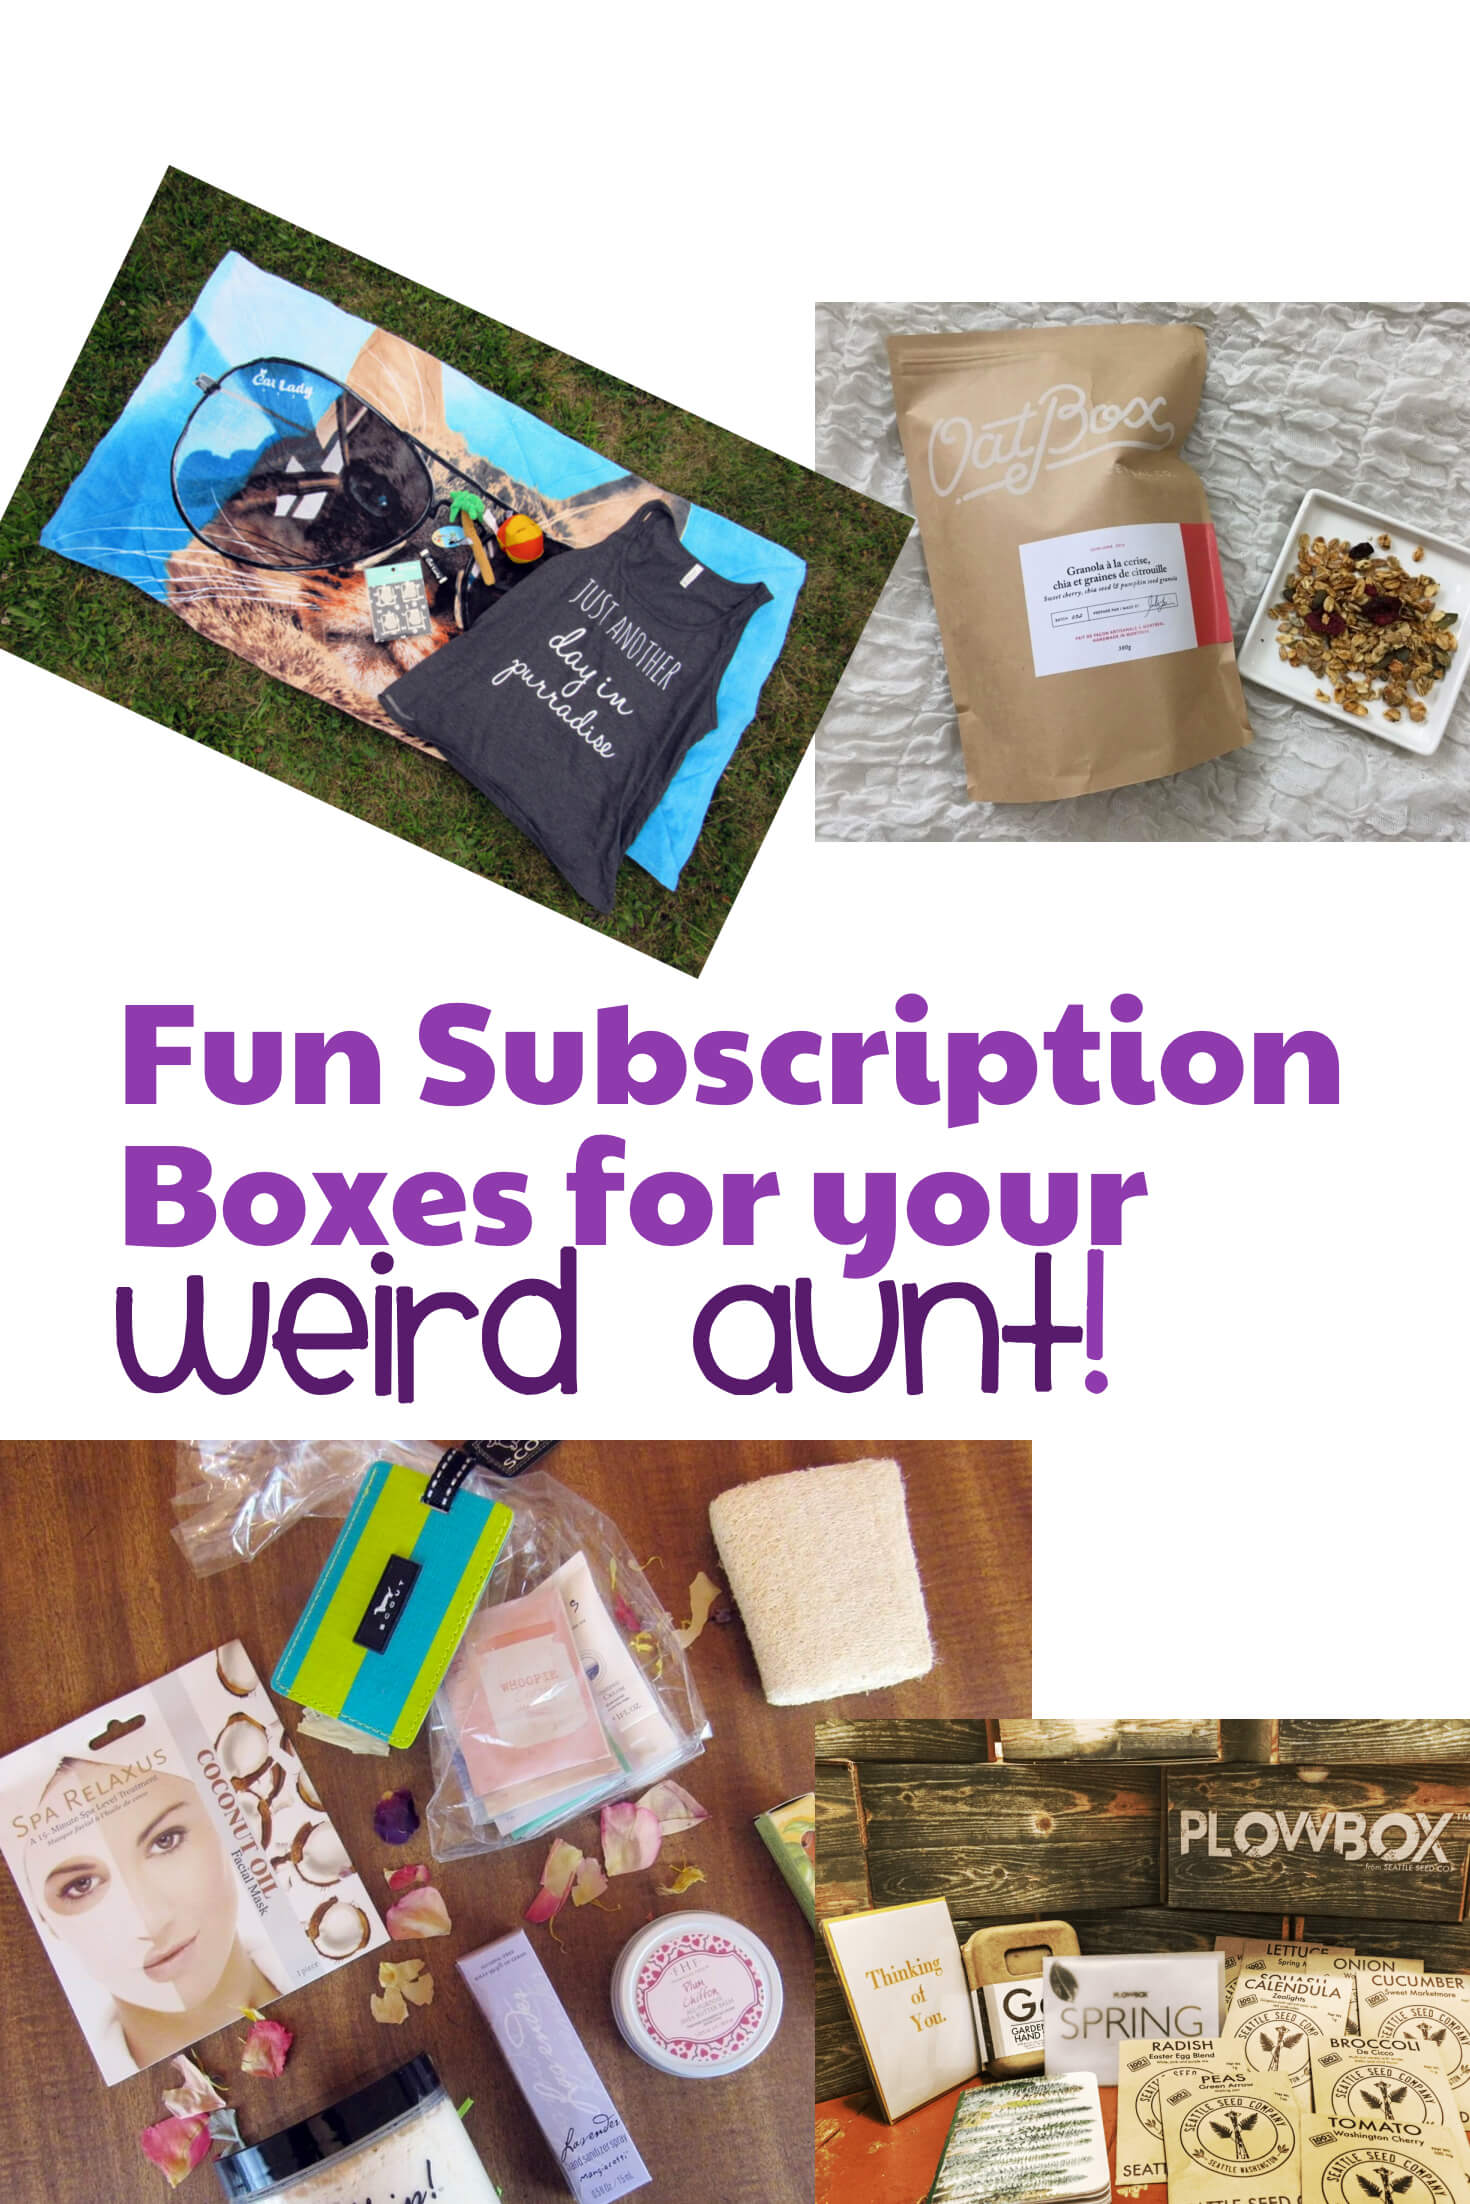 8 Subscription Boxes For Your Weird Aunt!